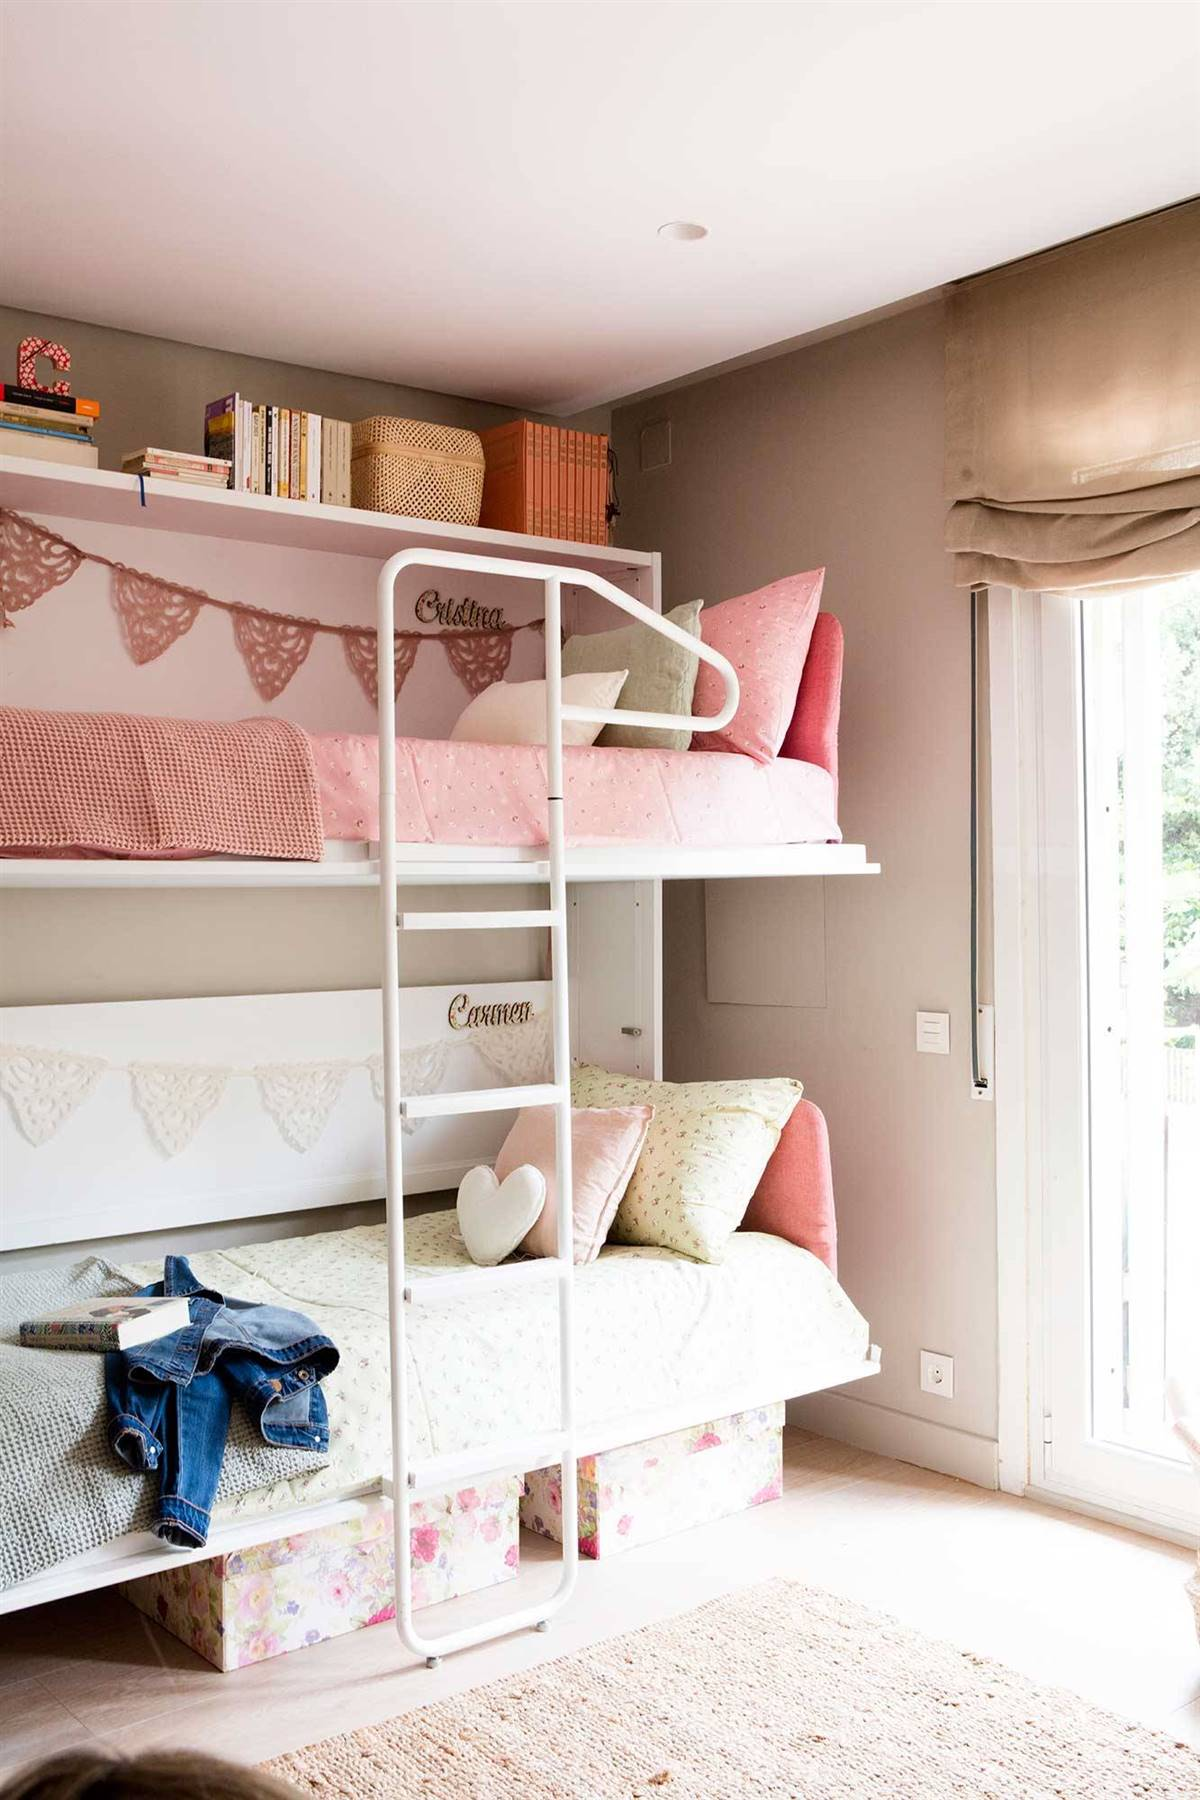 A ROOM WITH TWO BEDS THAT DISAPPEAR